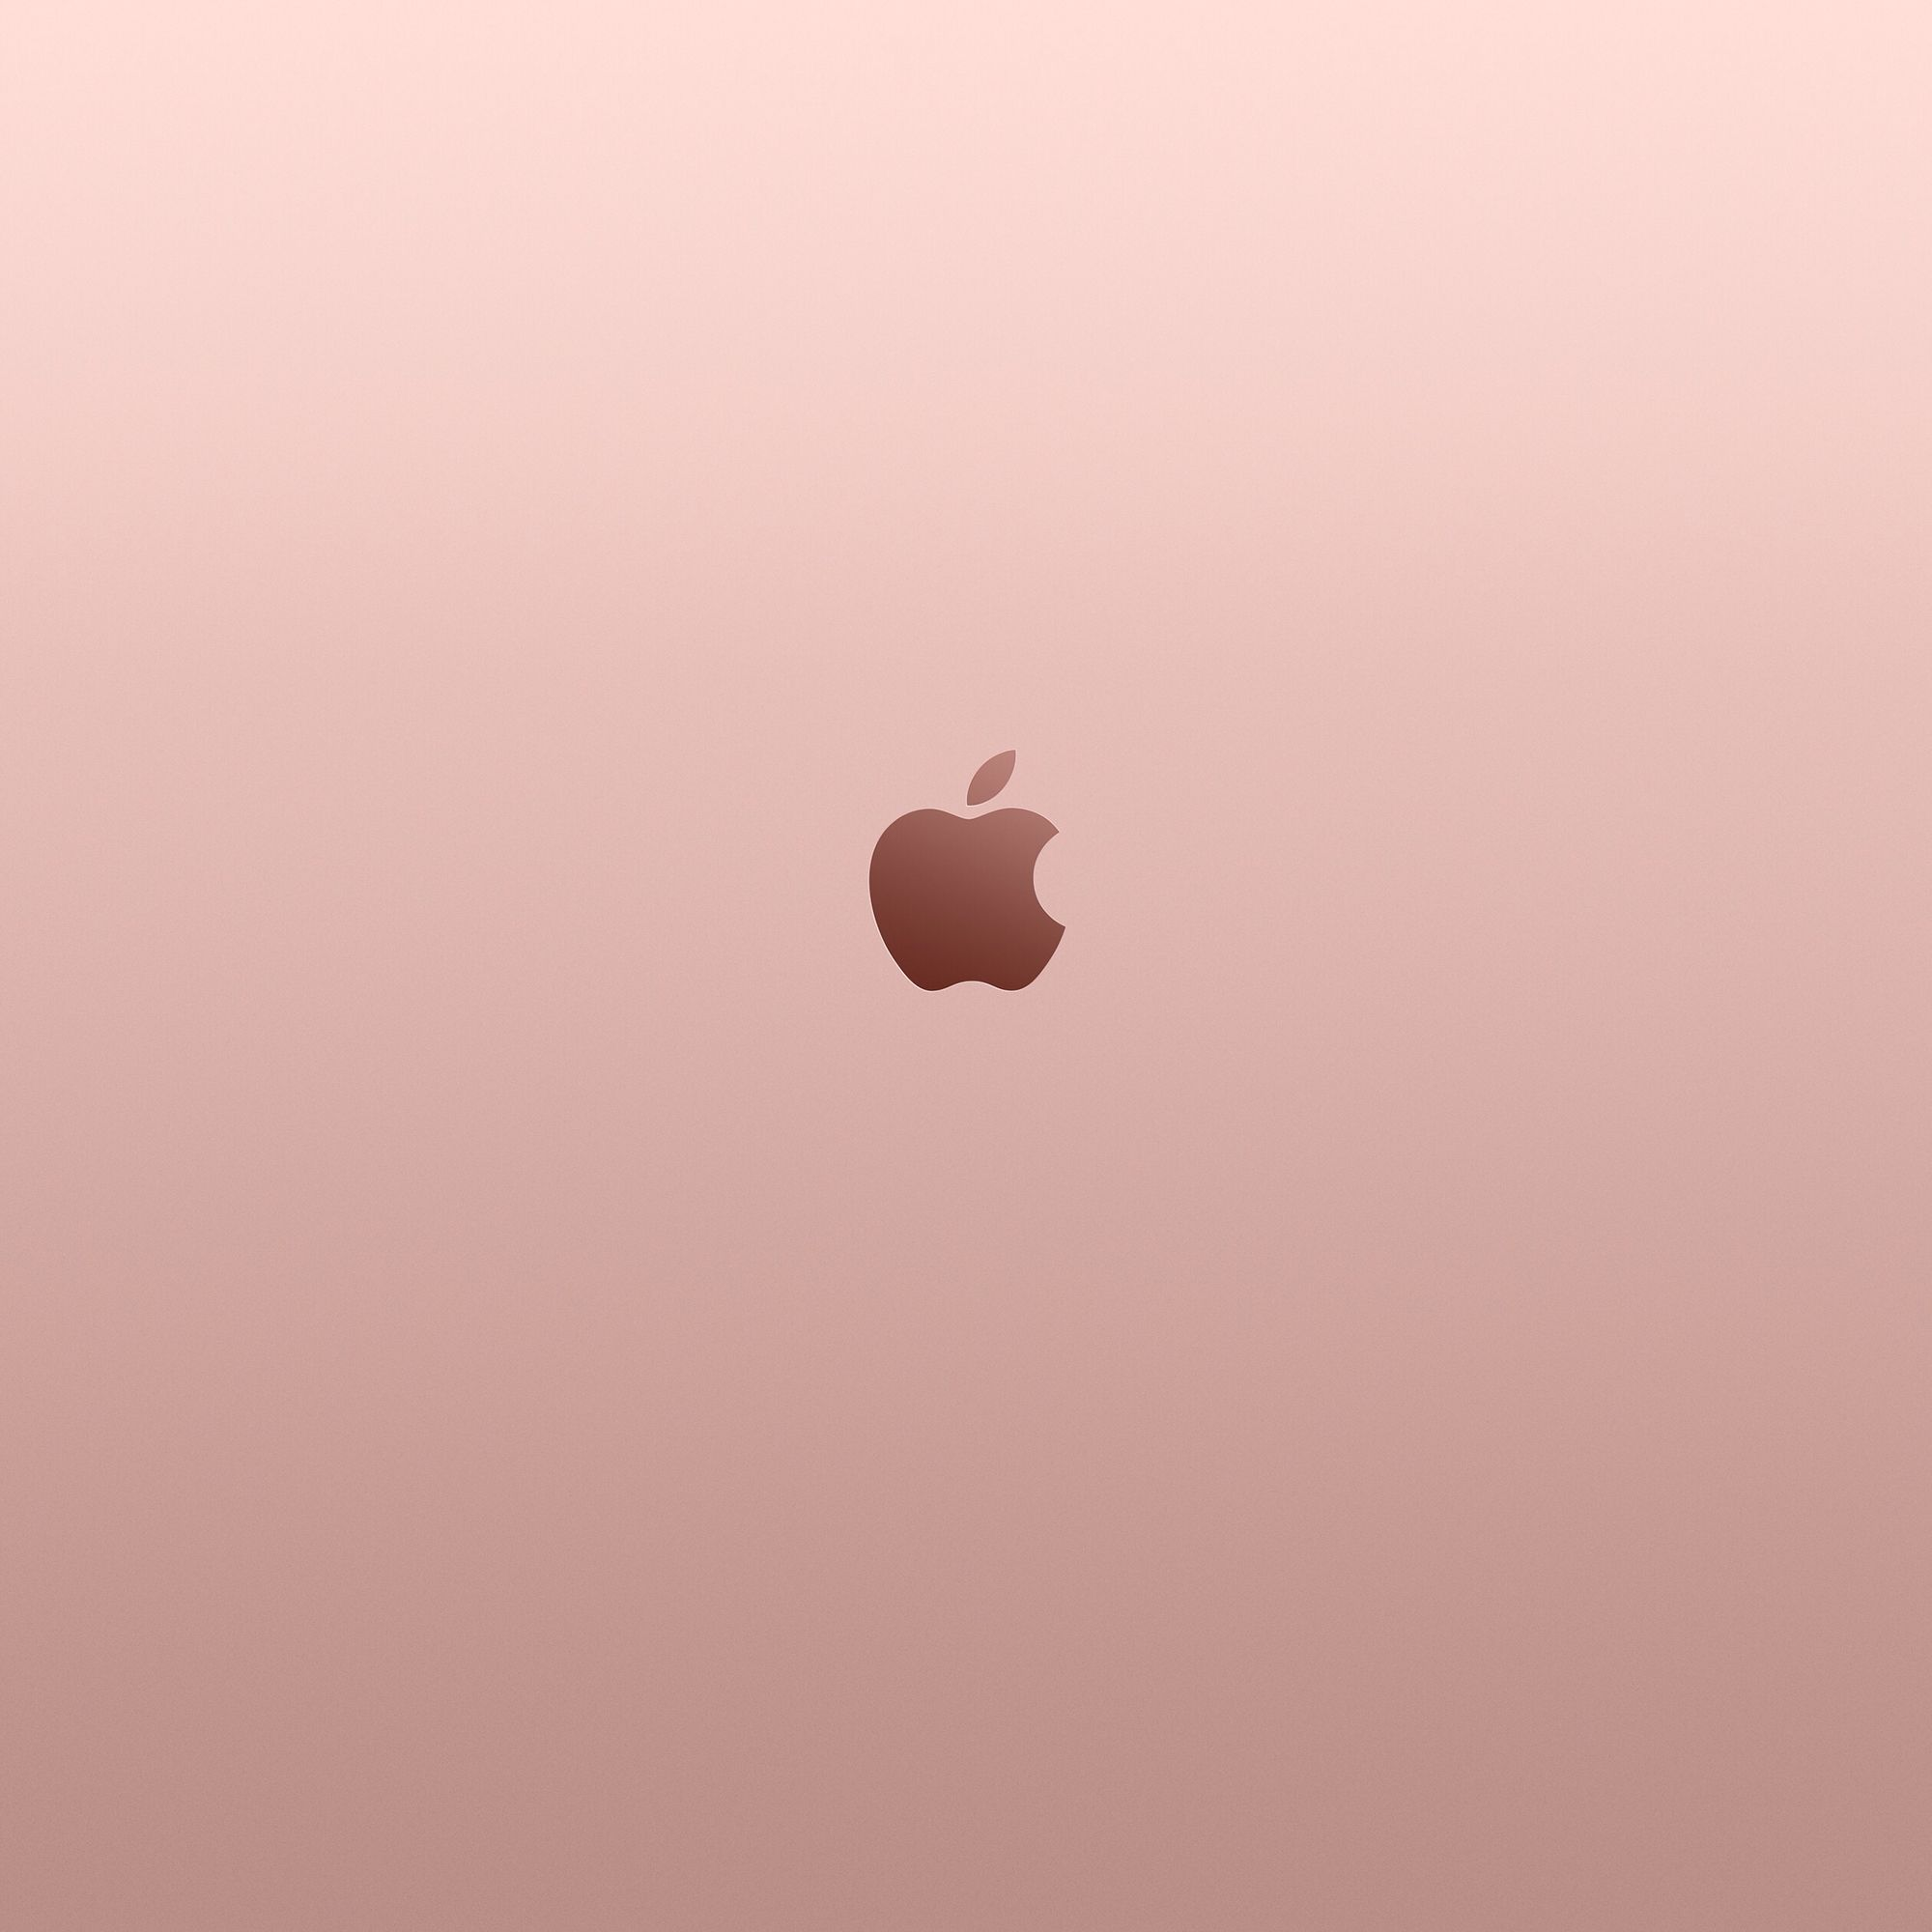 Ipad Air Mini Rose Gold Wallpapers